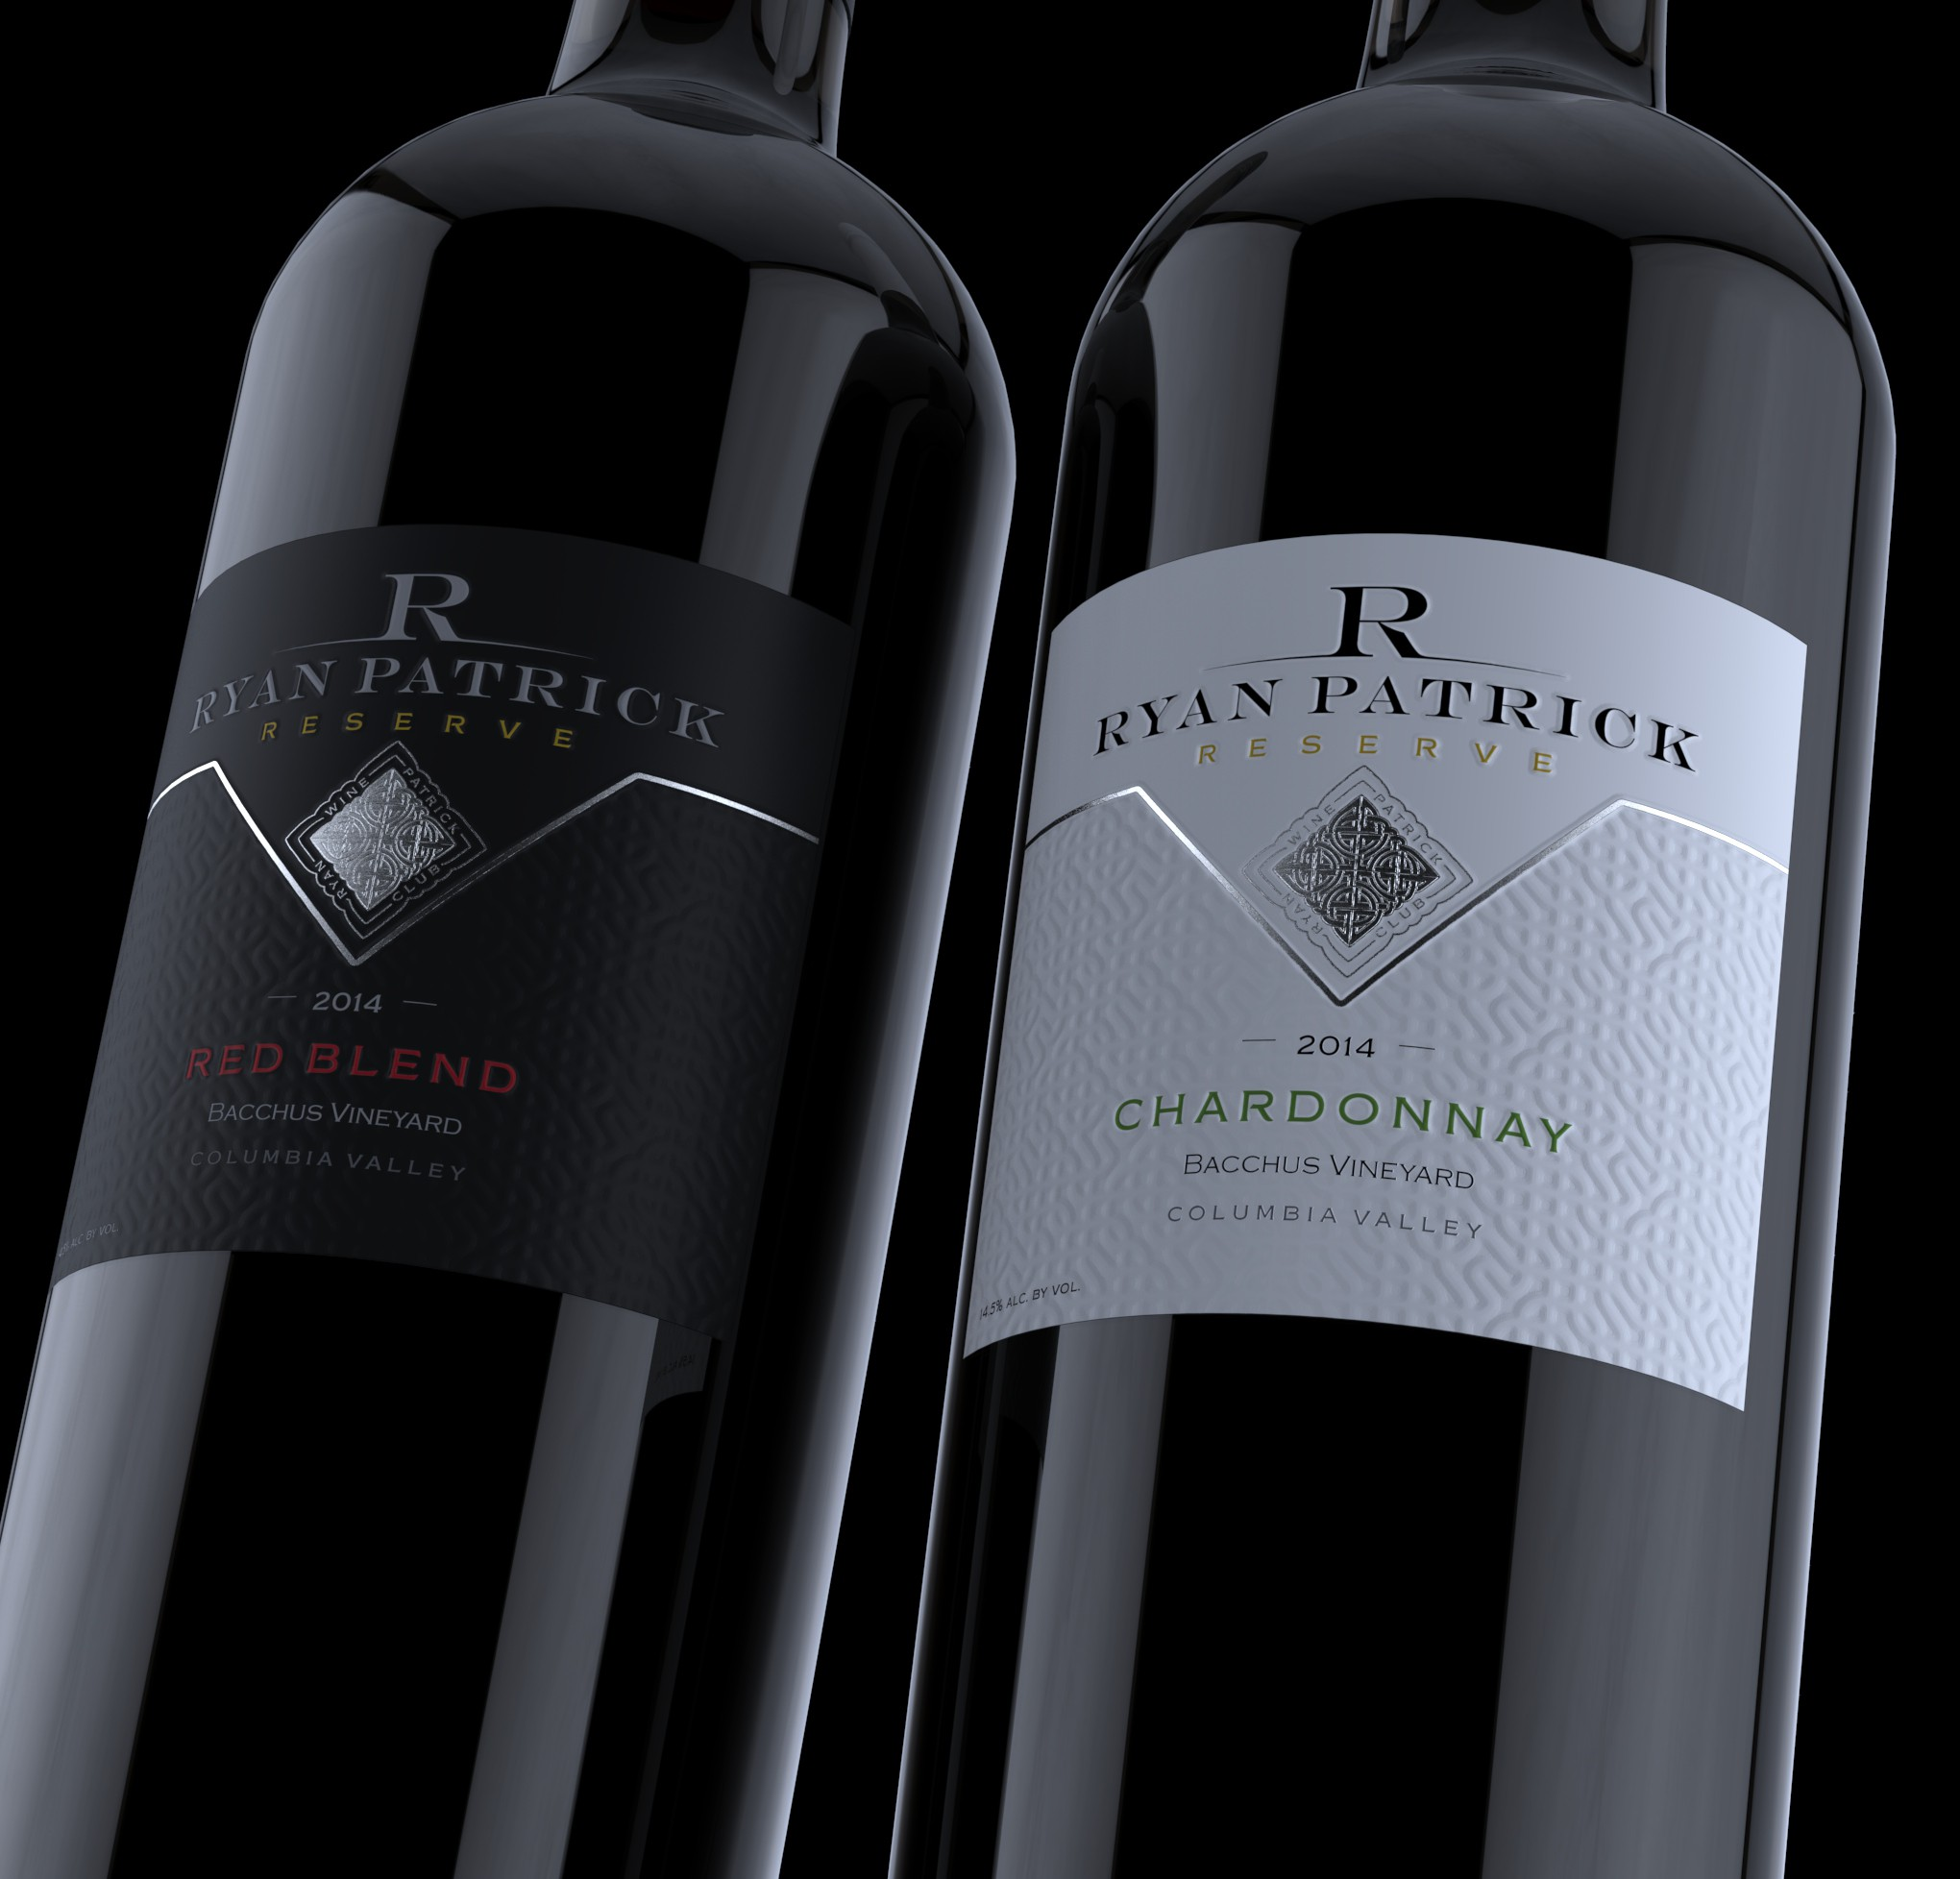 New Label for Ryan Patrick Wines